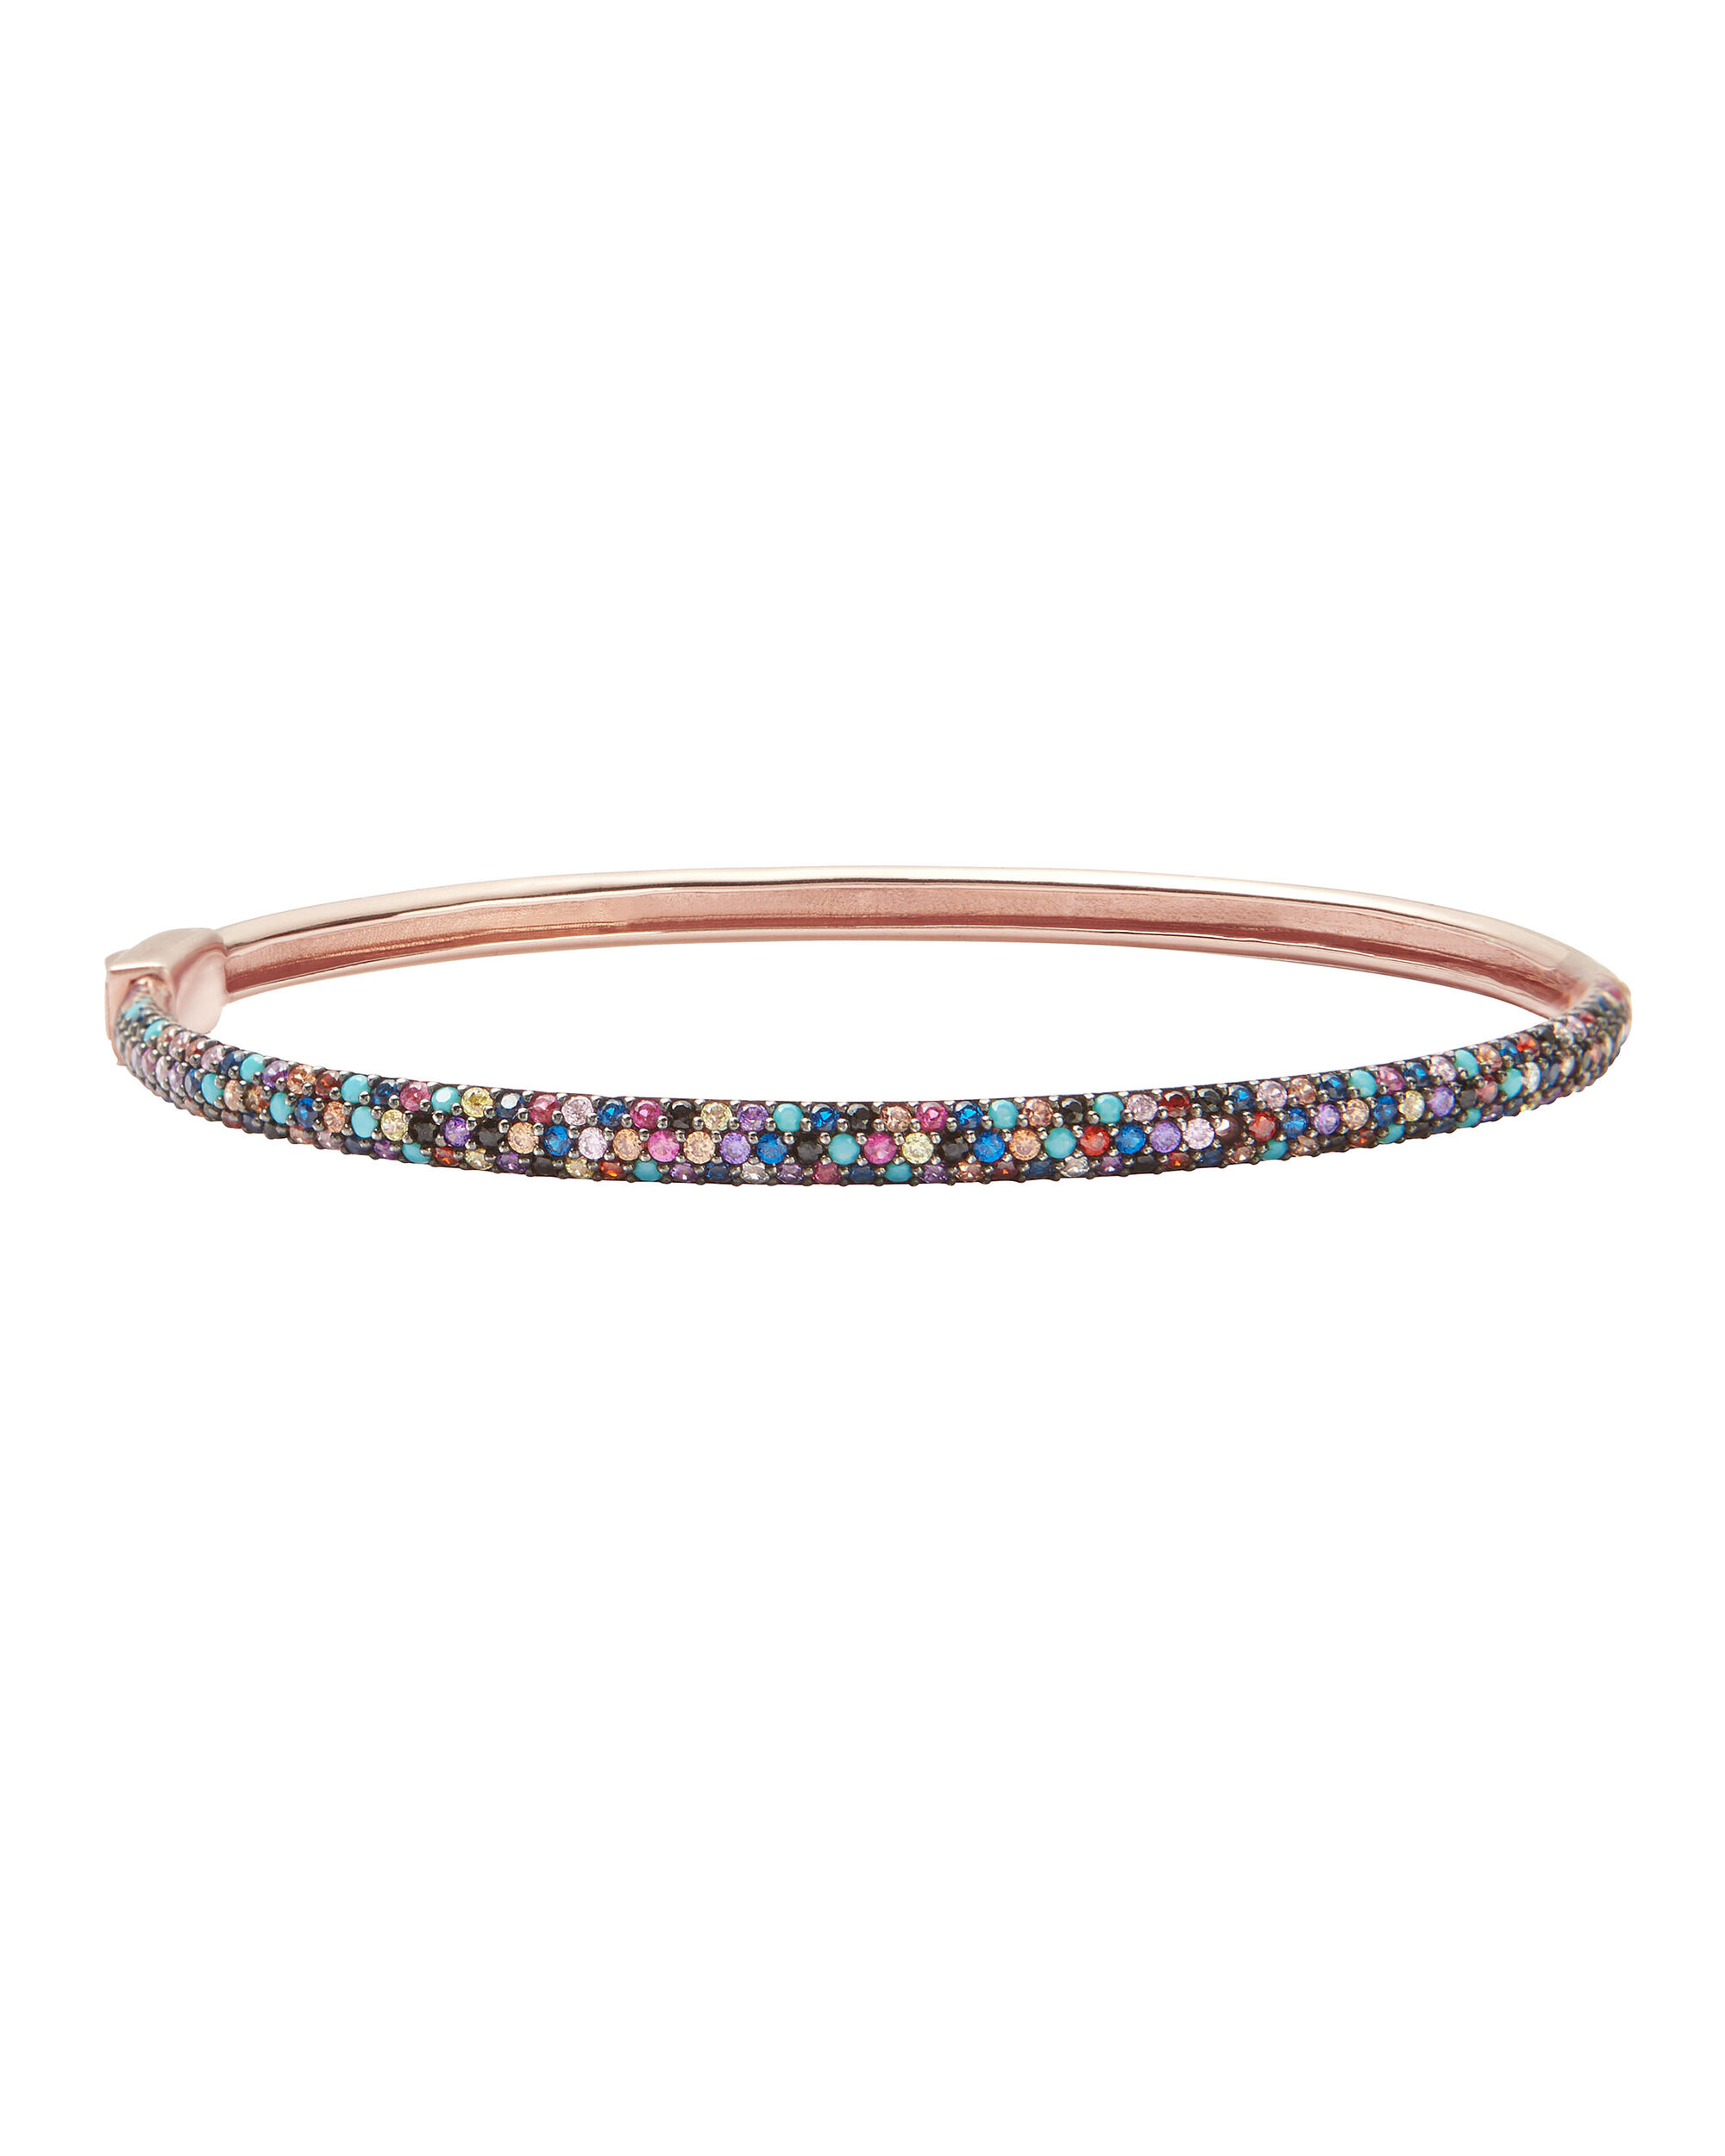 Malibu Multicolored Bangle, MULTI, hi-res